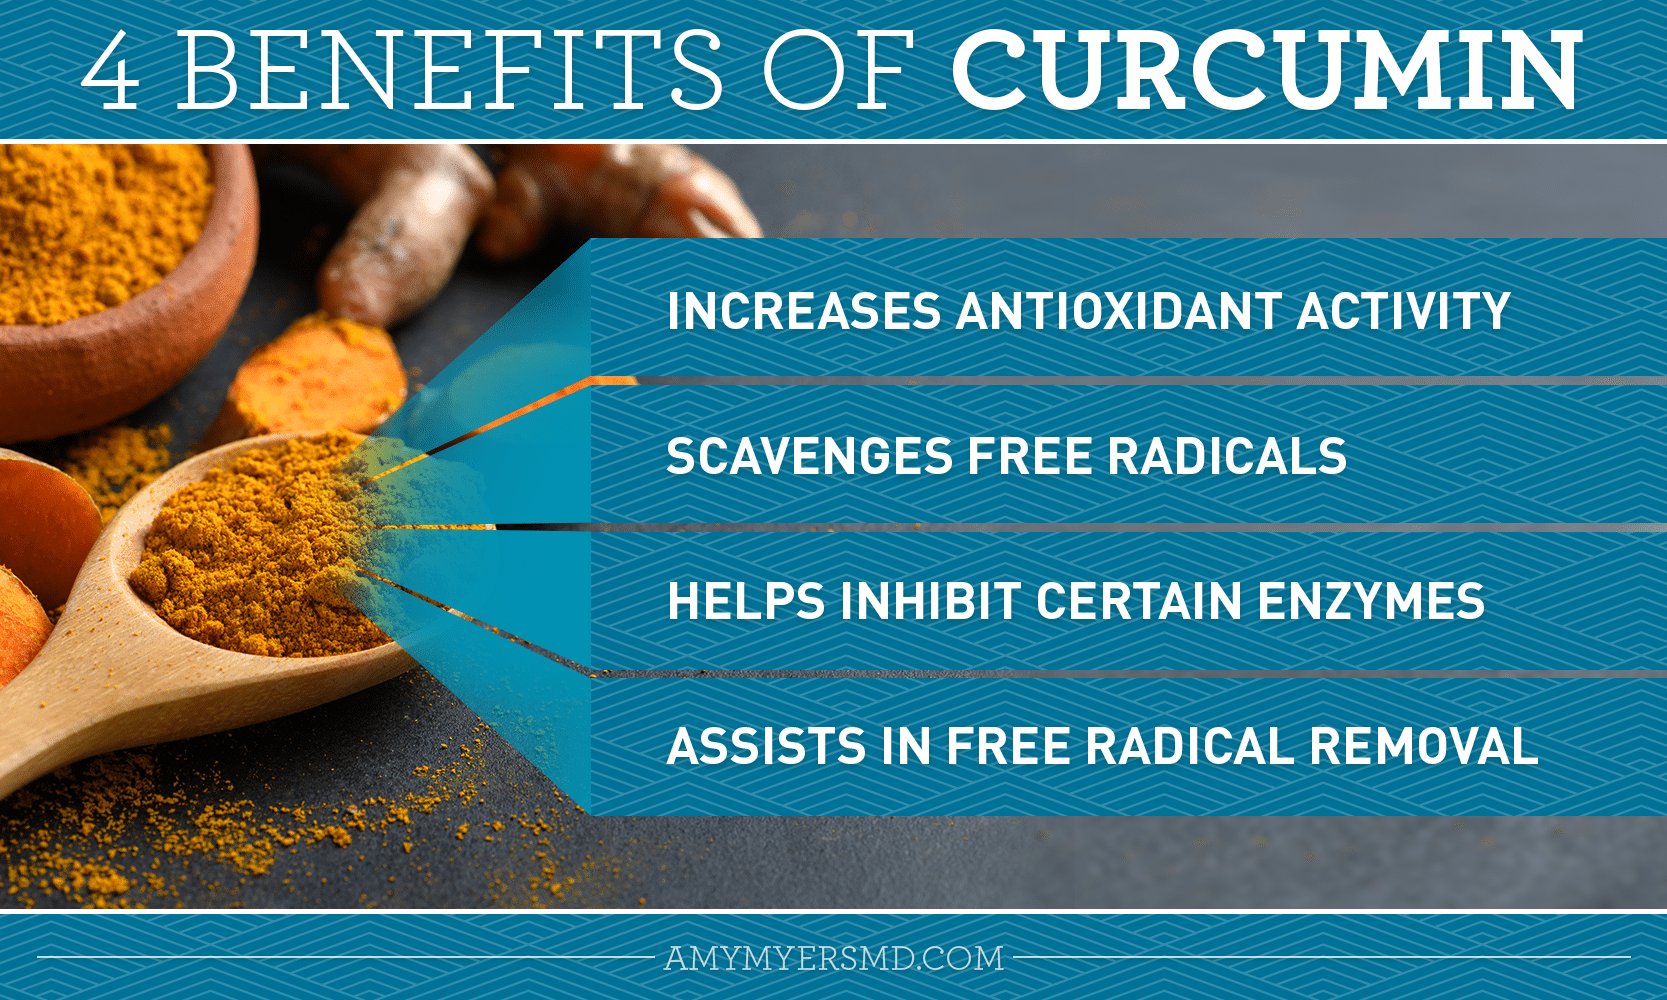 The Benefits of Curcumin - Infographic - Amy Myers MD